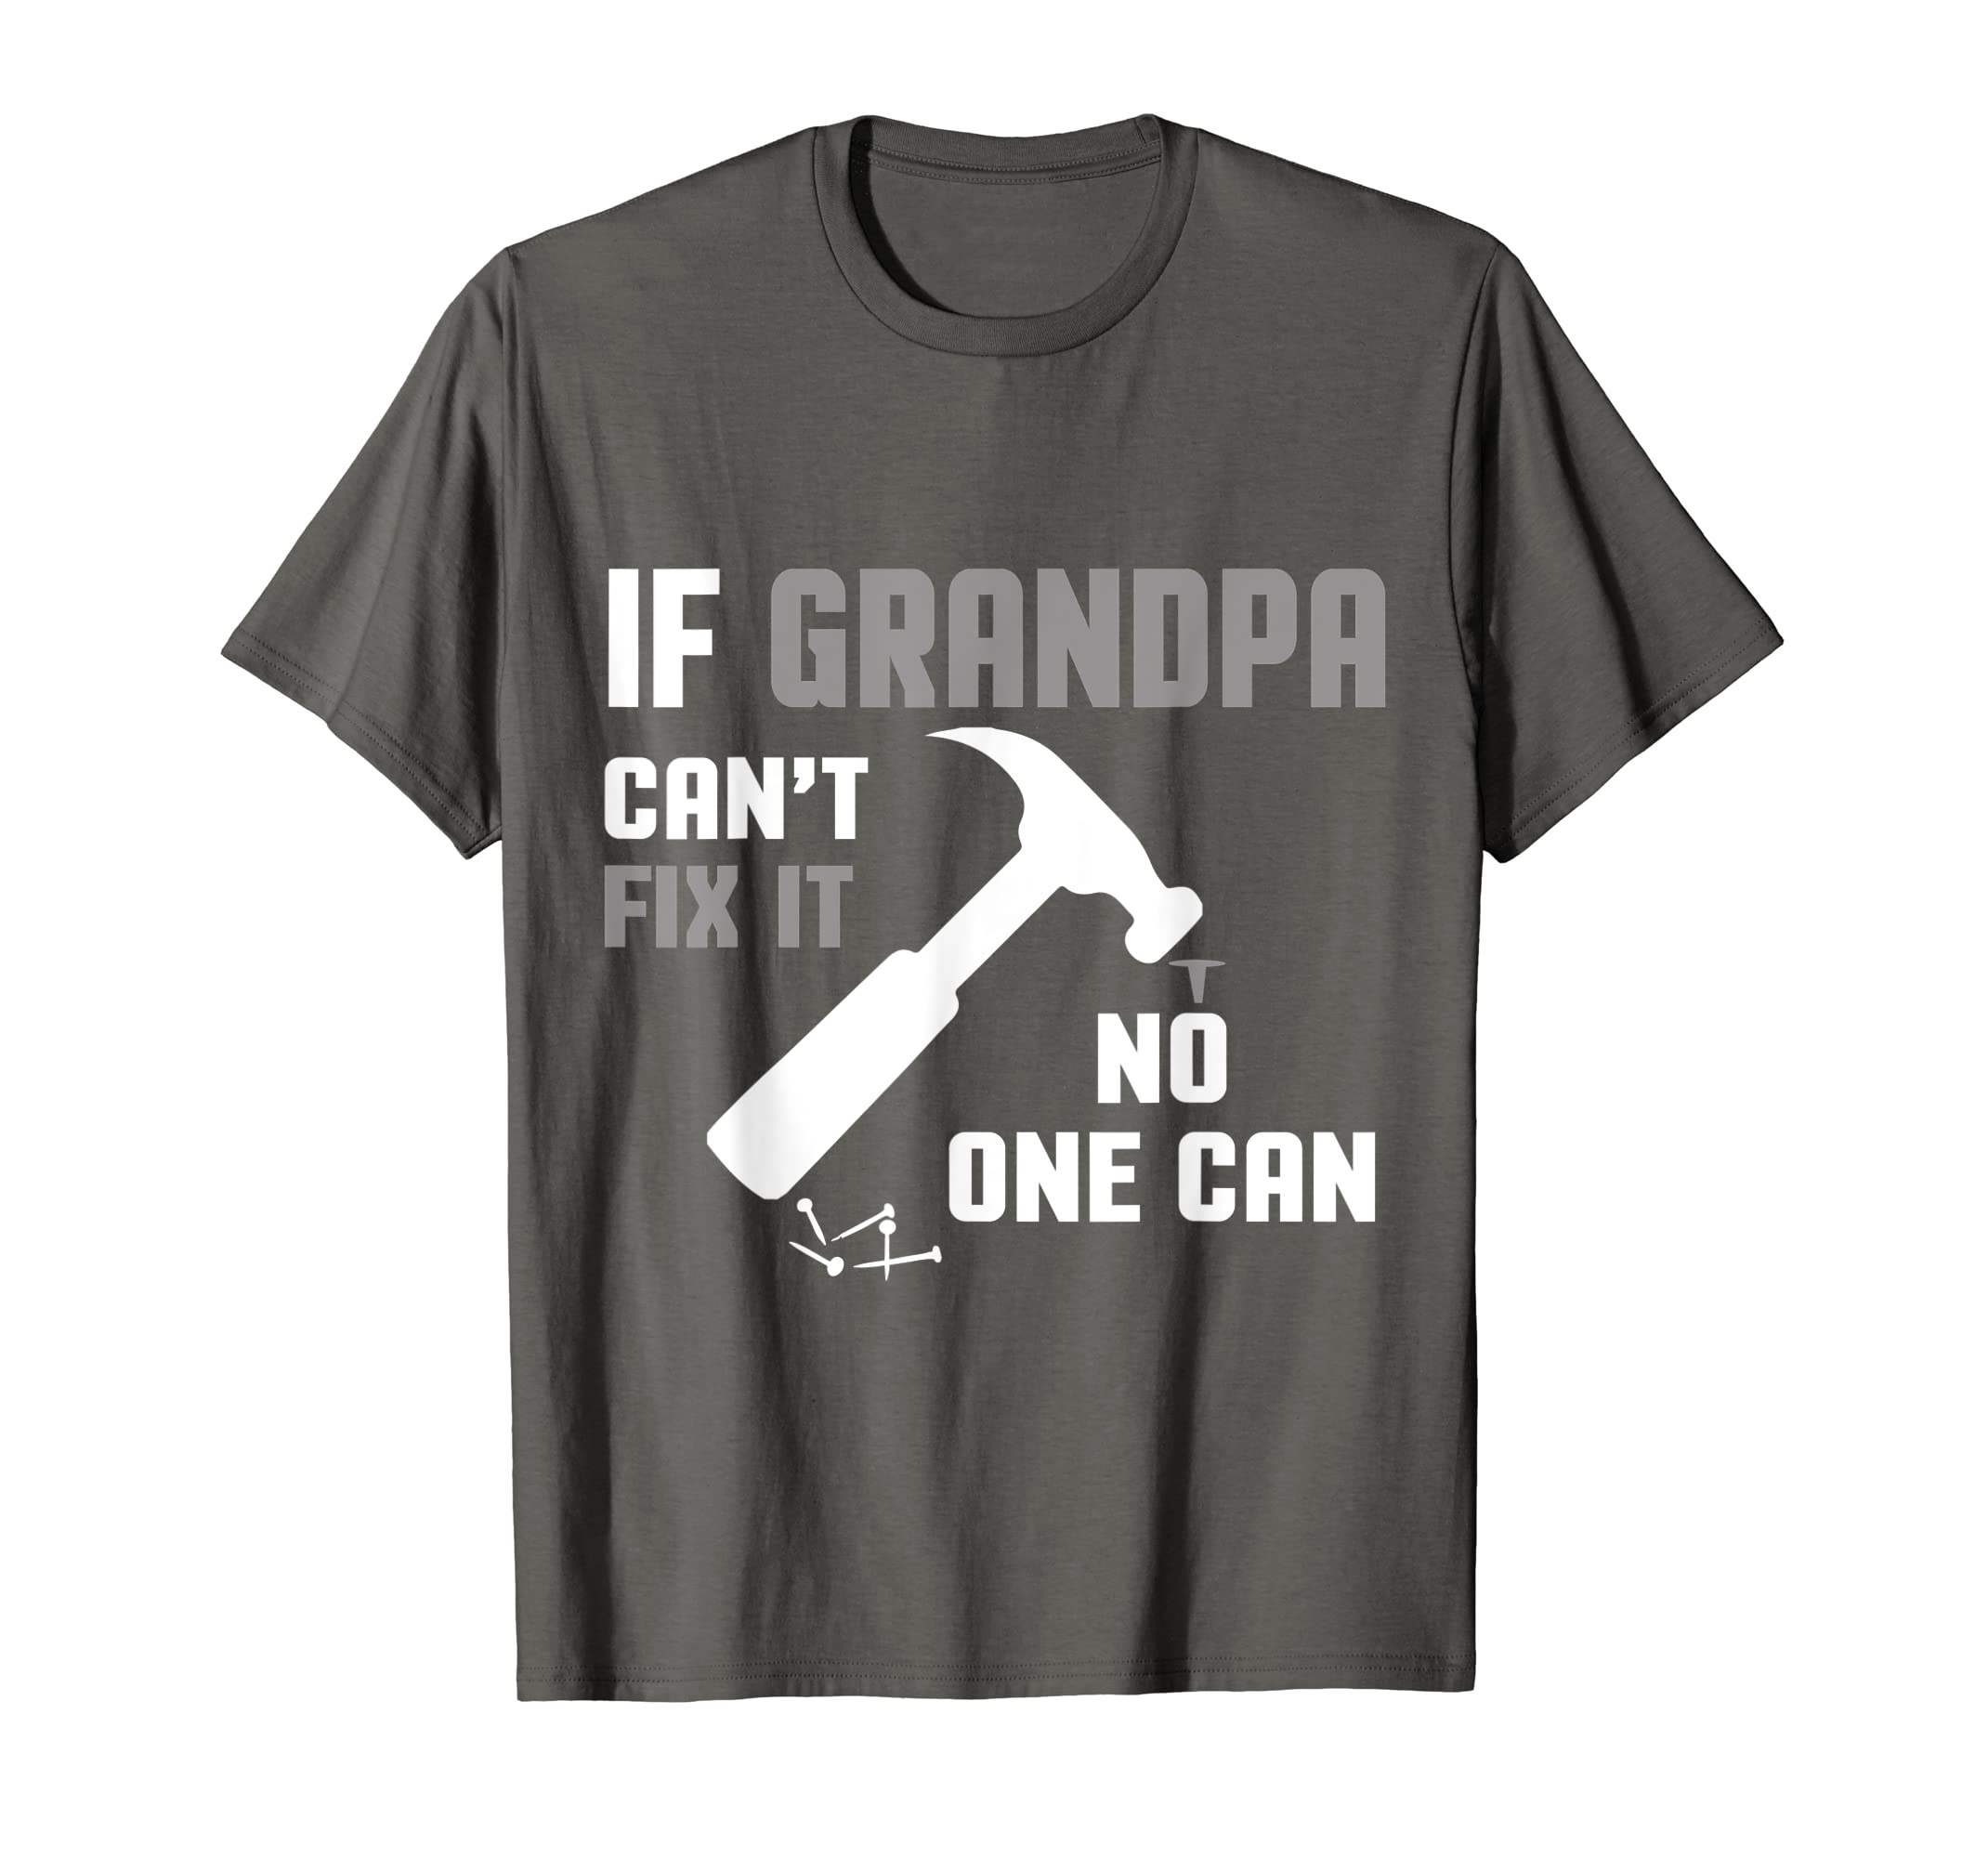 17ee6729 Amazon.com: Mens If Grandpa Can't Fix It No One Can T-shirt: Clothing